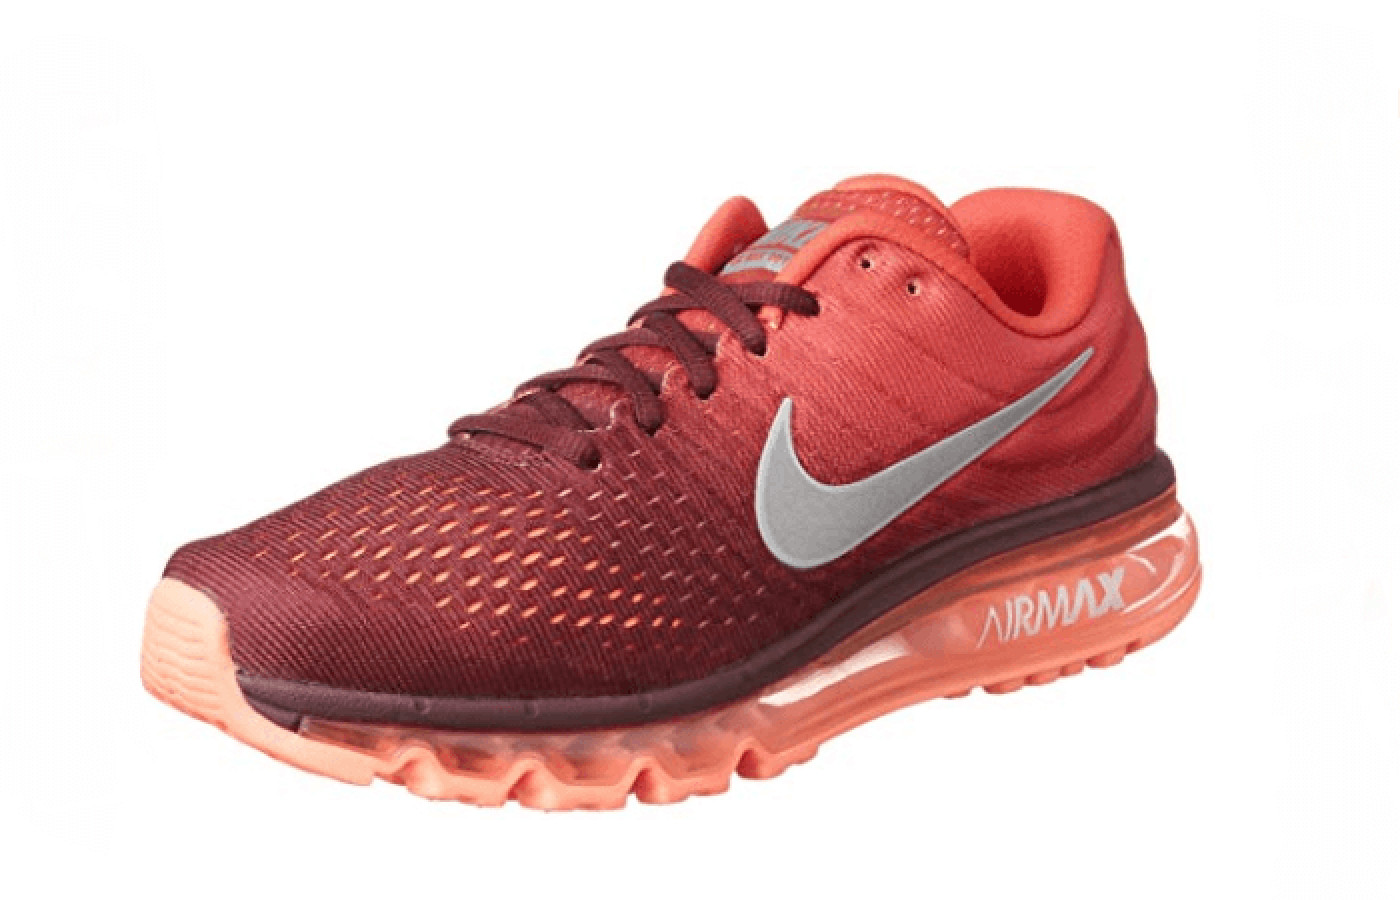 Nike Air Max 2019ed   Rated for Quality - in Apr 2019  7ad6ce9aa